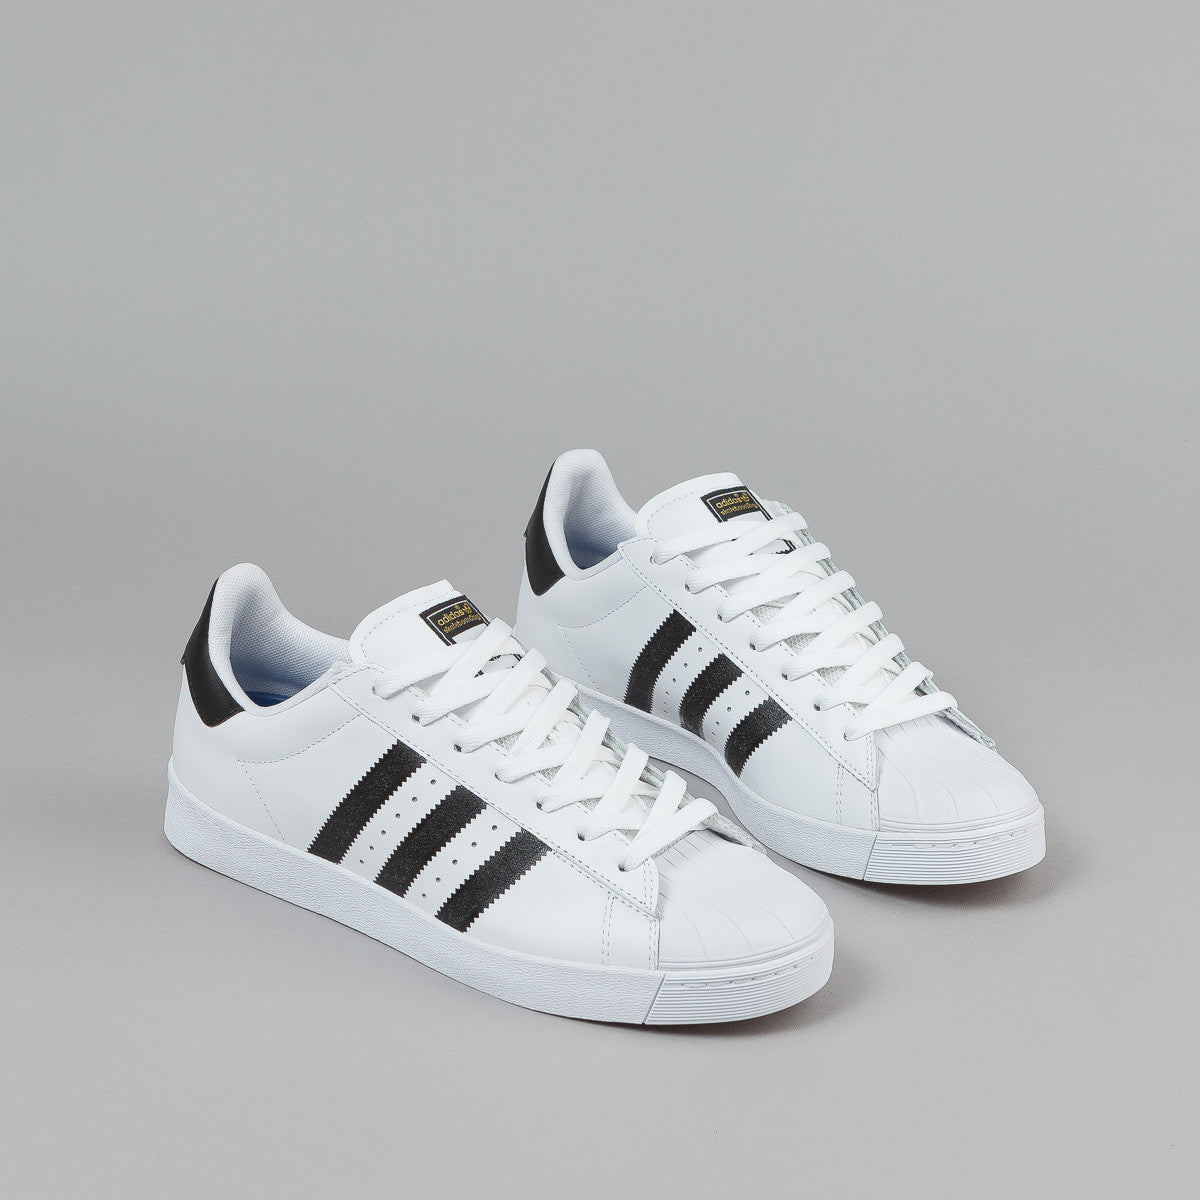 Adidas Superstar Black N White